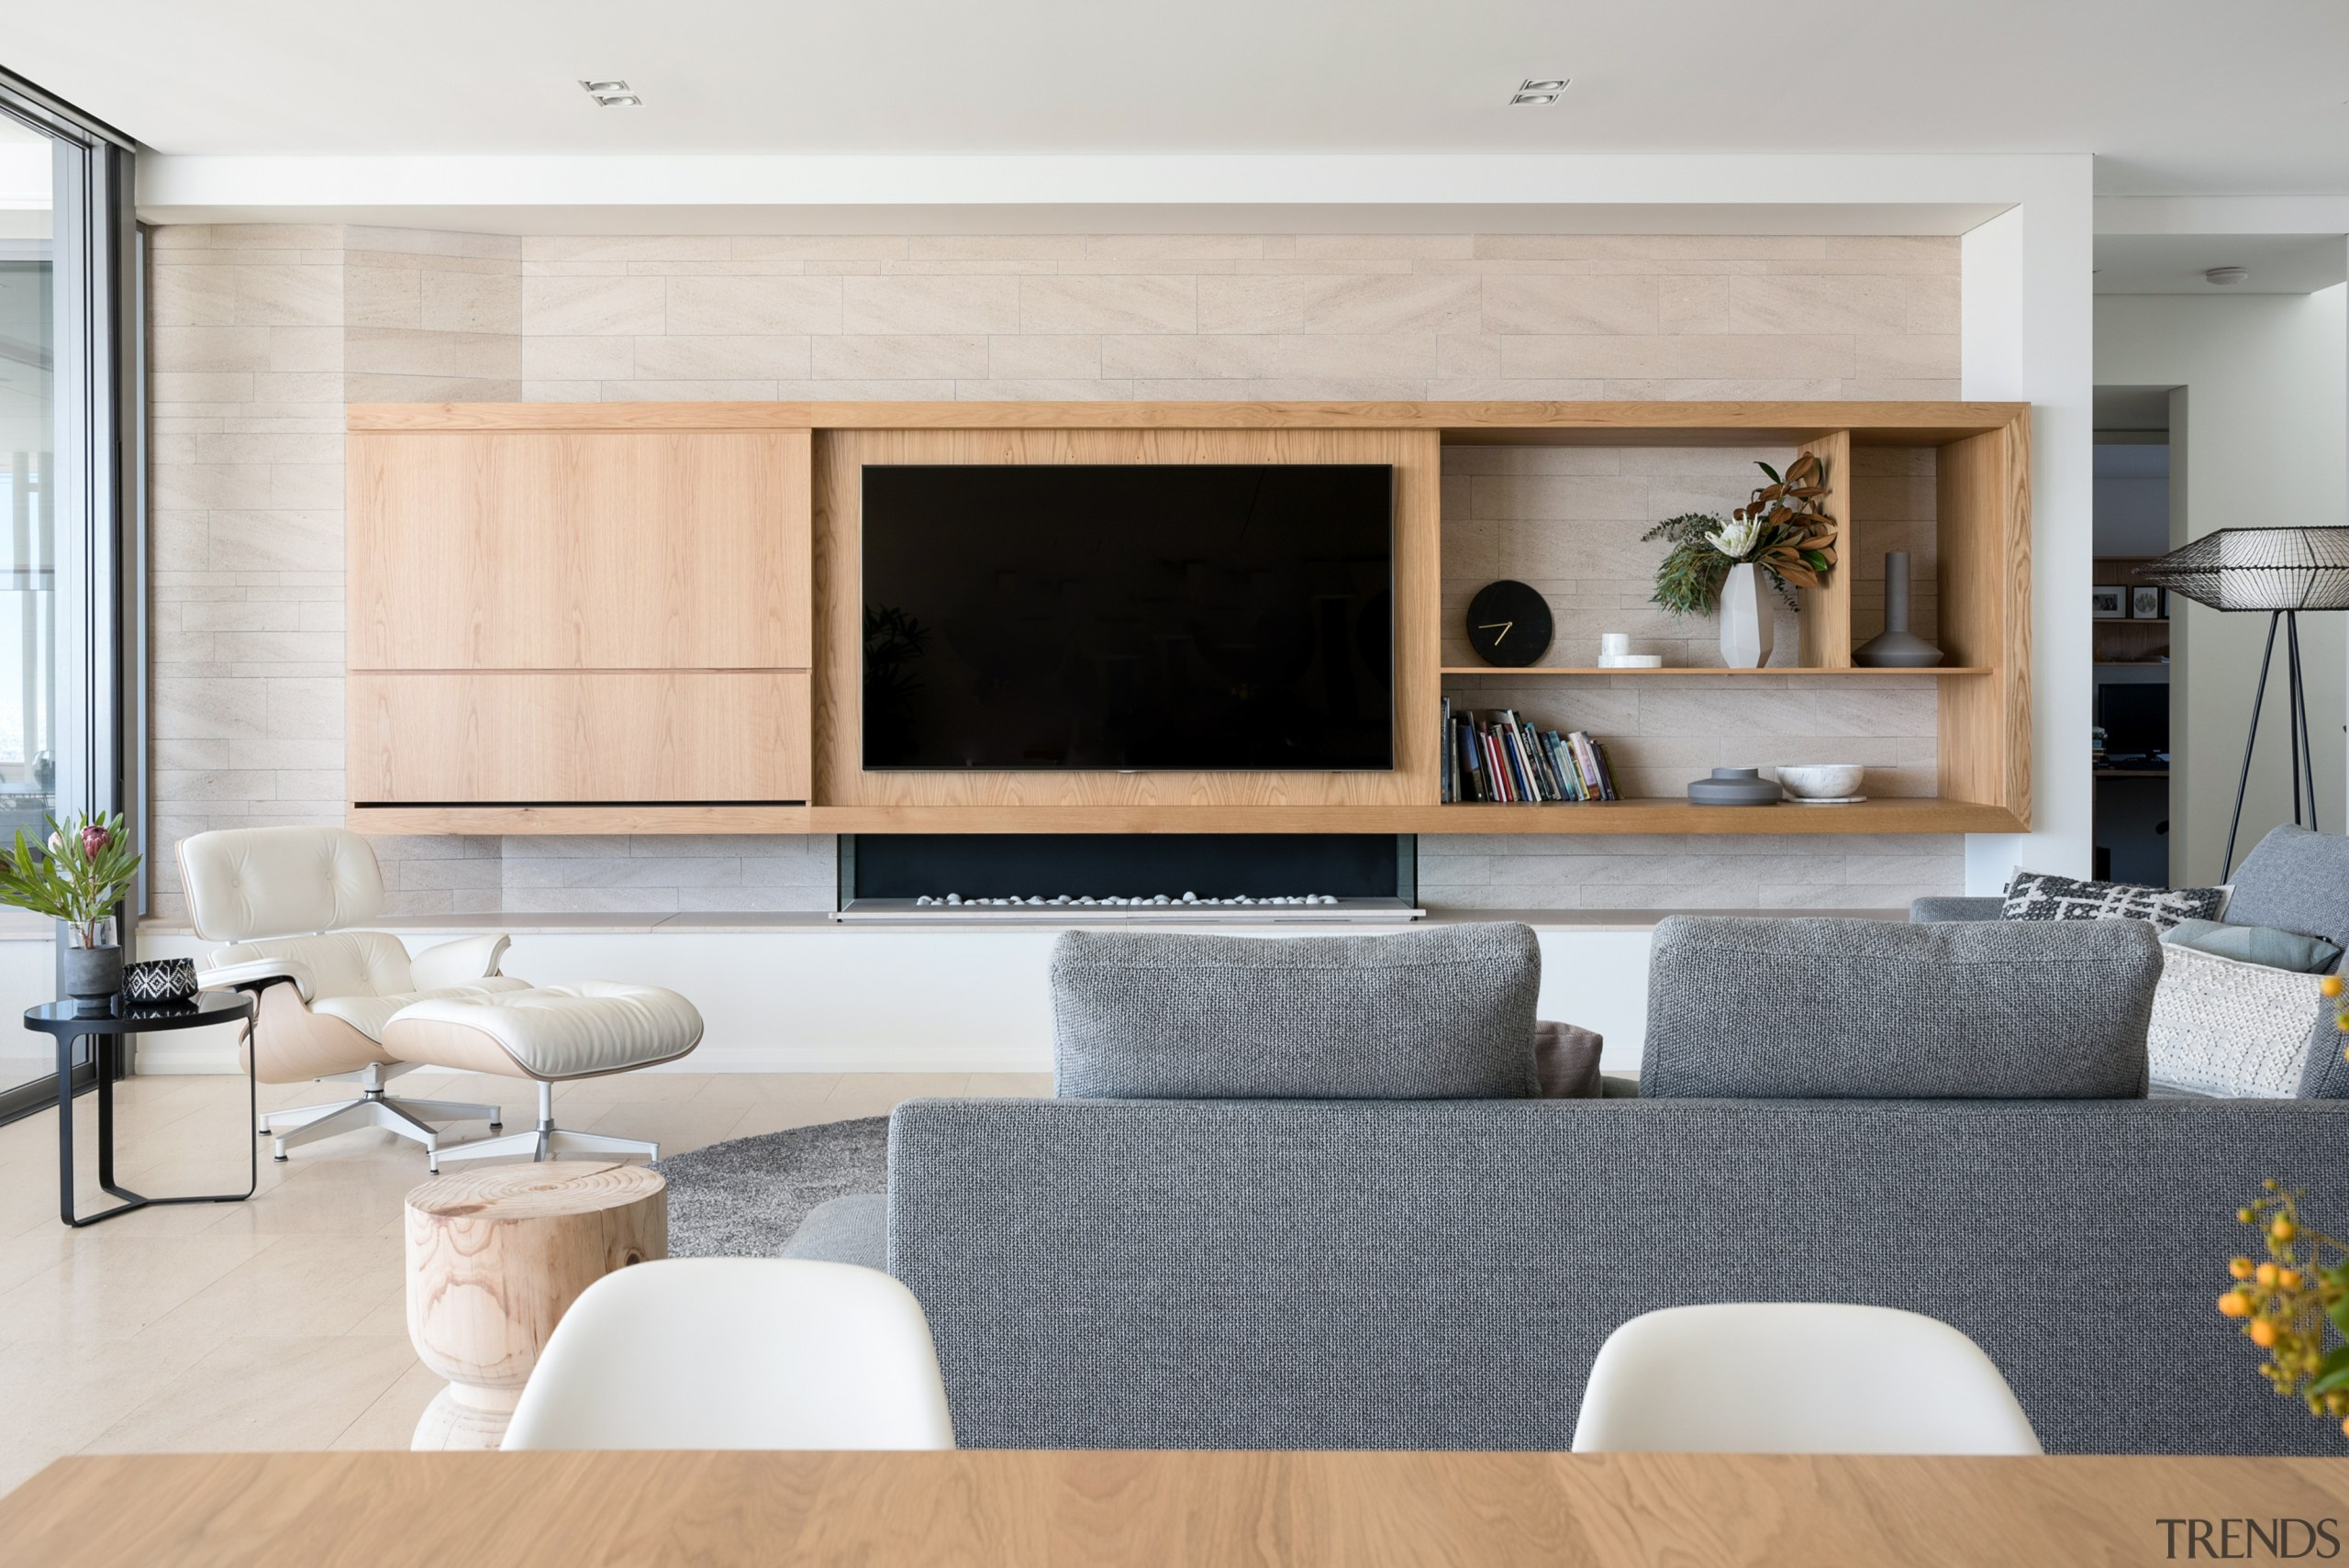 Custom built-in cabinetry accommodates the television in this building, cabinetry, ceiling, coffee table, couch, design, fireplace, floor, flooring, furniture, hardwood, home, house, interior design, living room, property, real estate, room, table, wall, wood flooring, gray